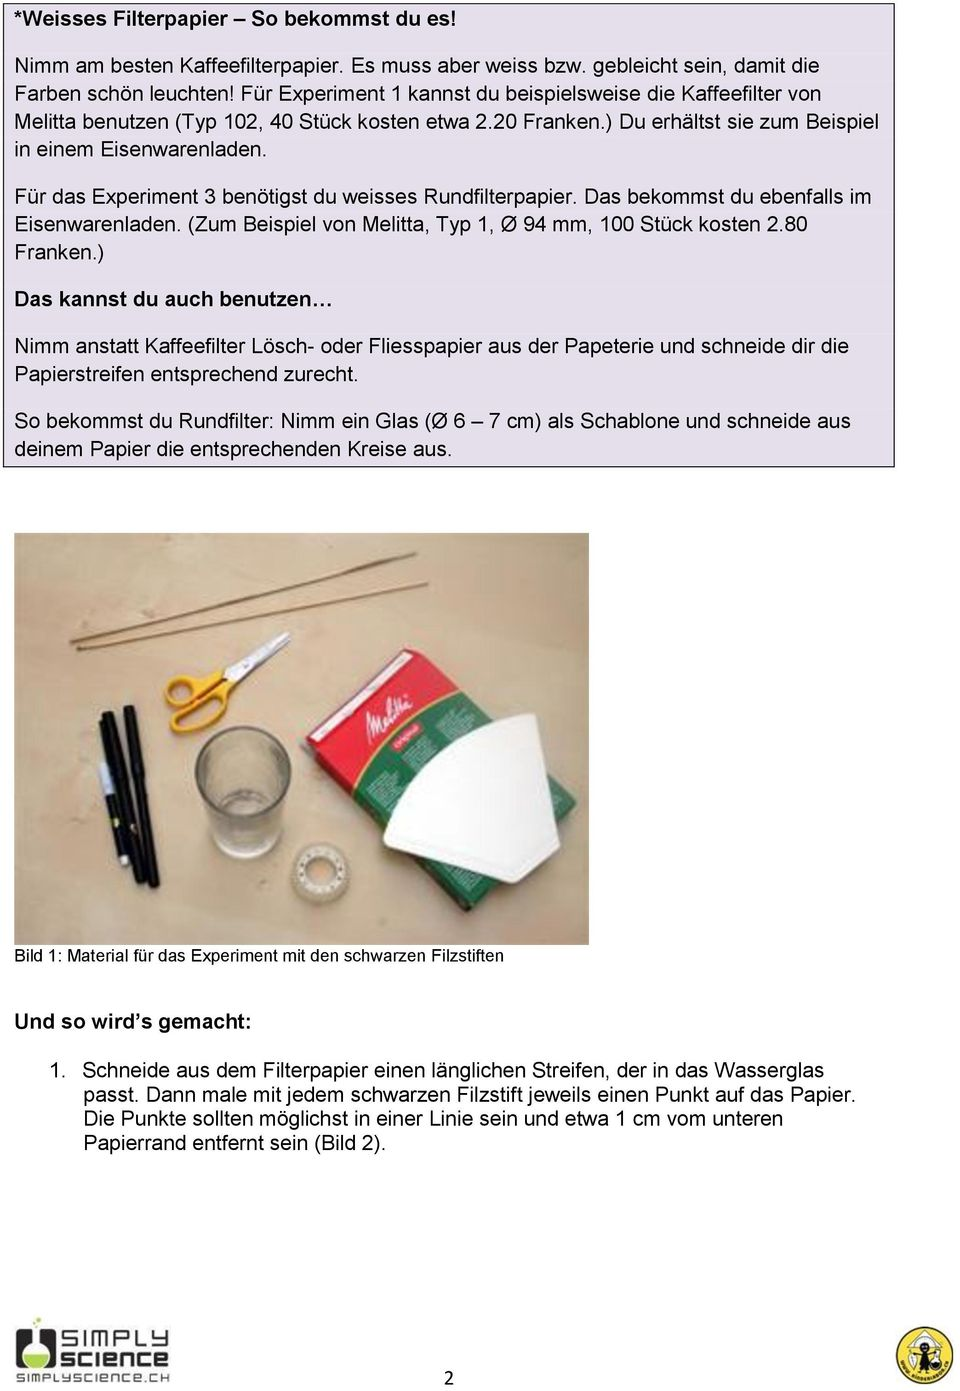 Charmant Wortresearch Papier Vorlage Galerie - Entry Level Resume ...